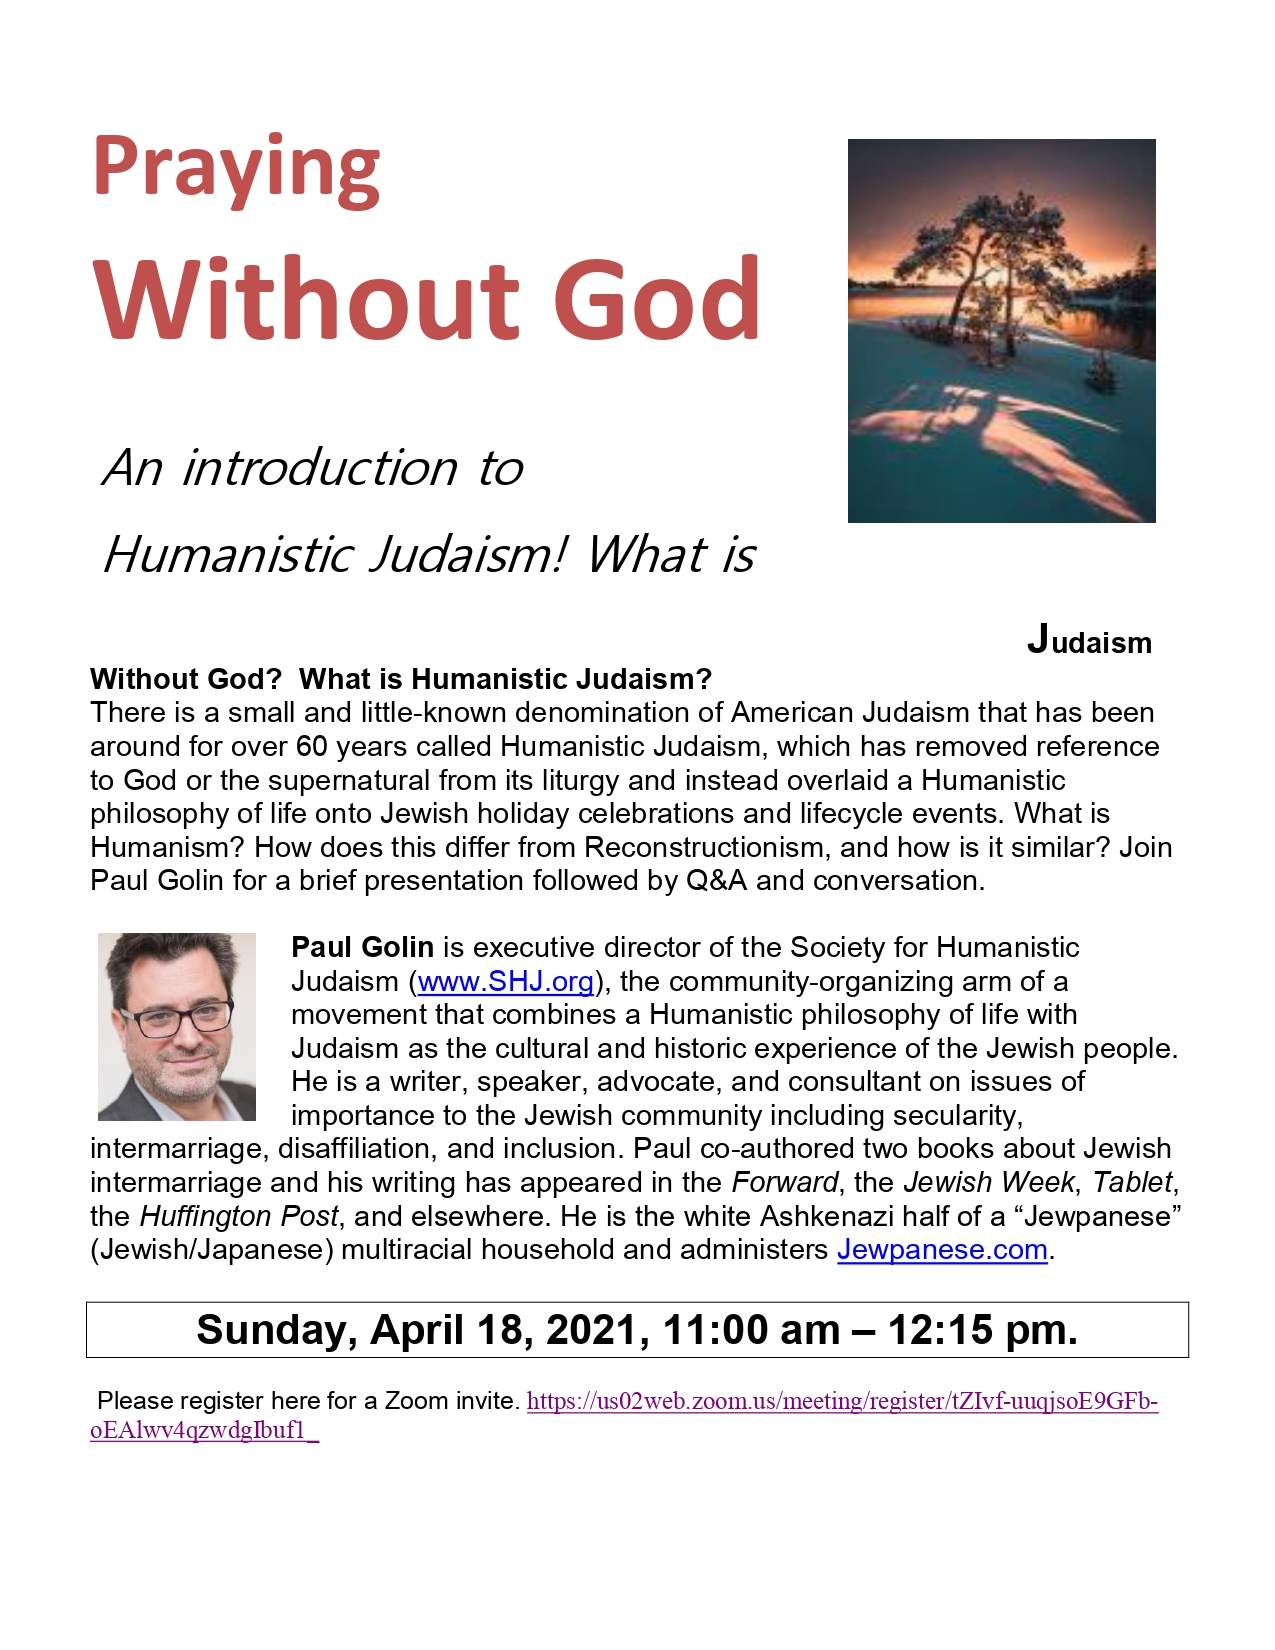 Banner Image for Praying Without God: Intro to Humanistic Judaism